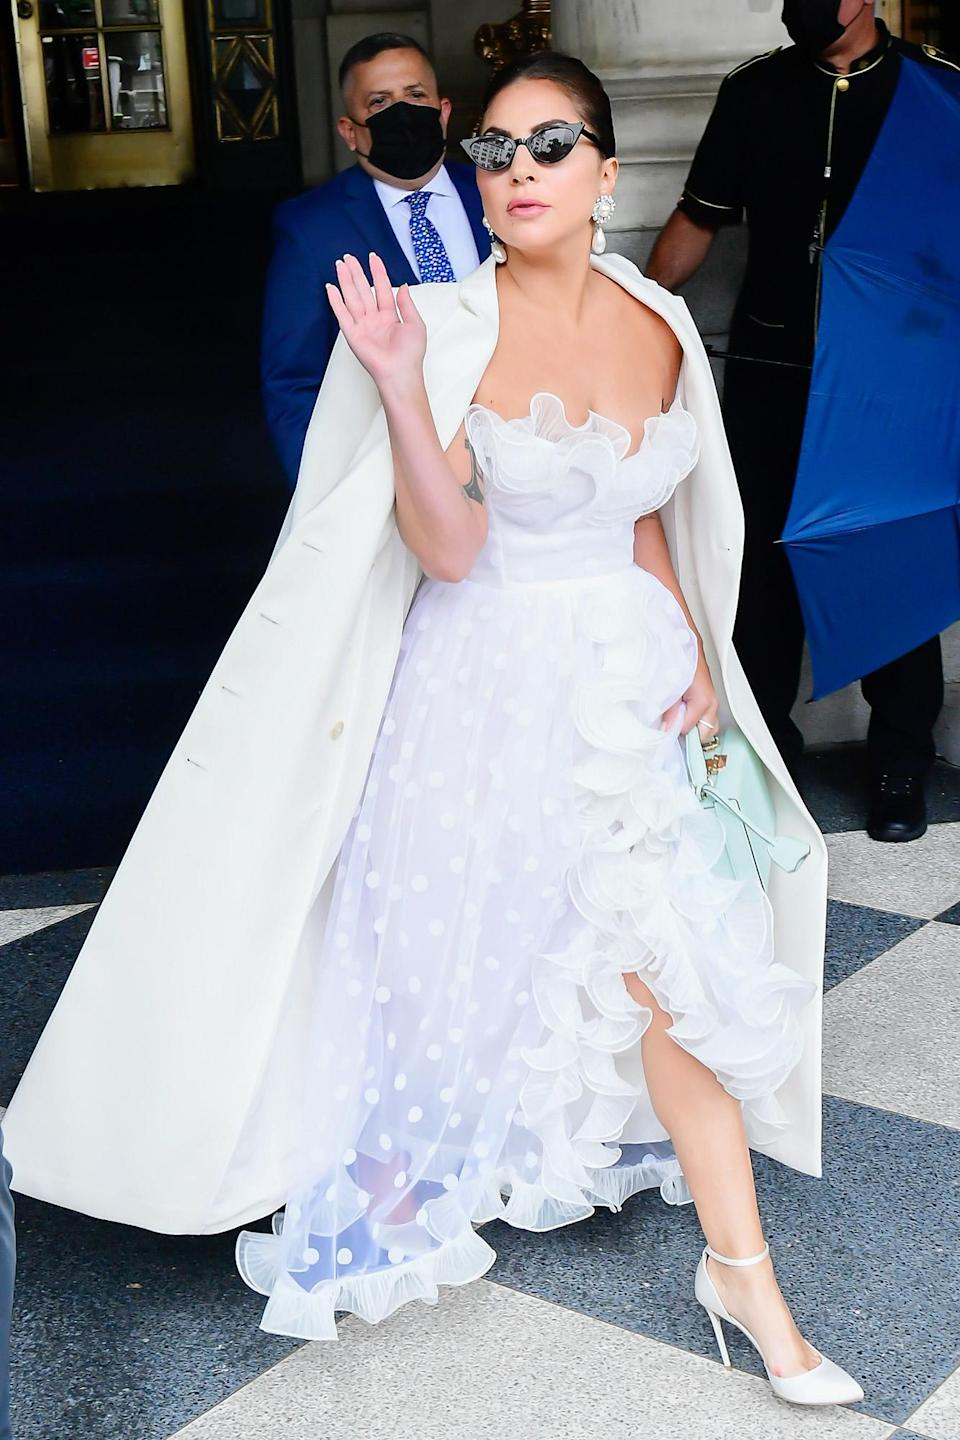 <p>Lady Gaga wears a gorgeous white gown and waves to fans while out in midtown N.Y.C. on July 1.</p>